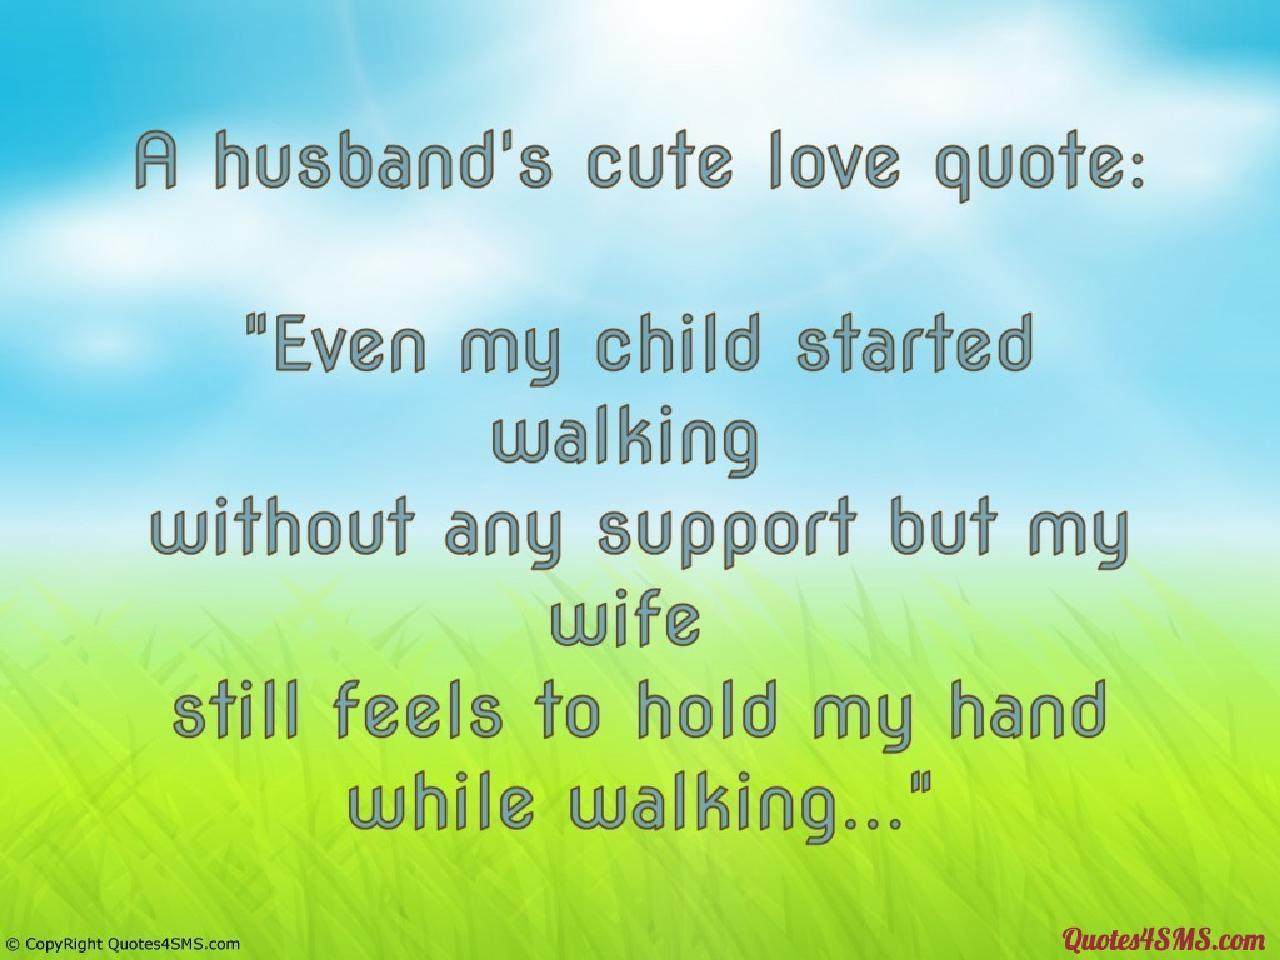 Love Wallpaper For Husband And Wife : I Love My Husband Wallpapers - Wallpaper cave